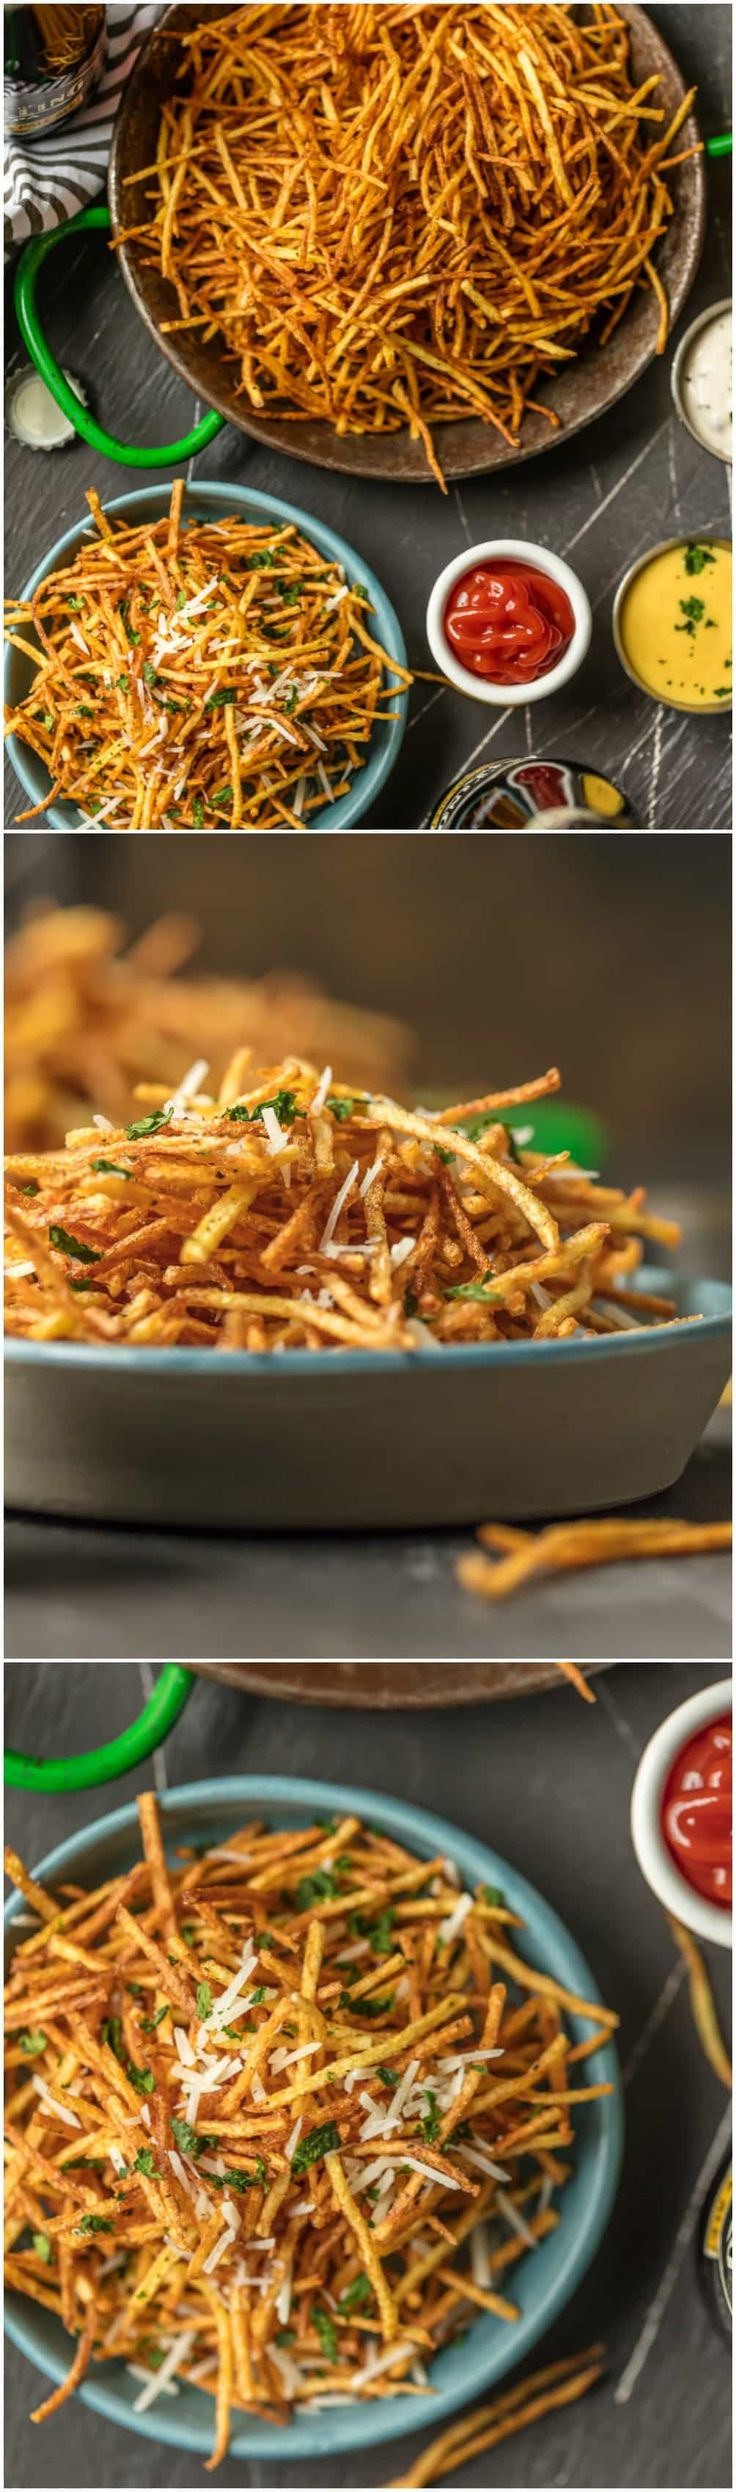 These Skinny Shoestring Fries are the perfect side for sandwiches to bbq to so much more! We love these fun potato fries that are super thin and deep fried. So delicious and fun. via @beckygallhardin